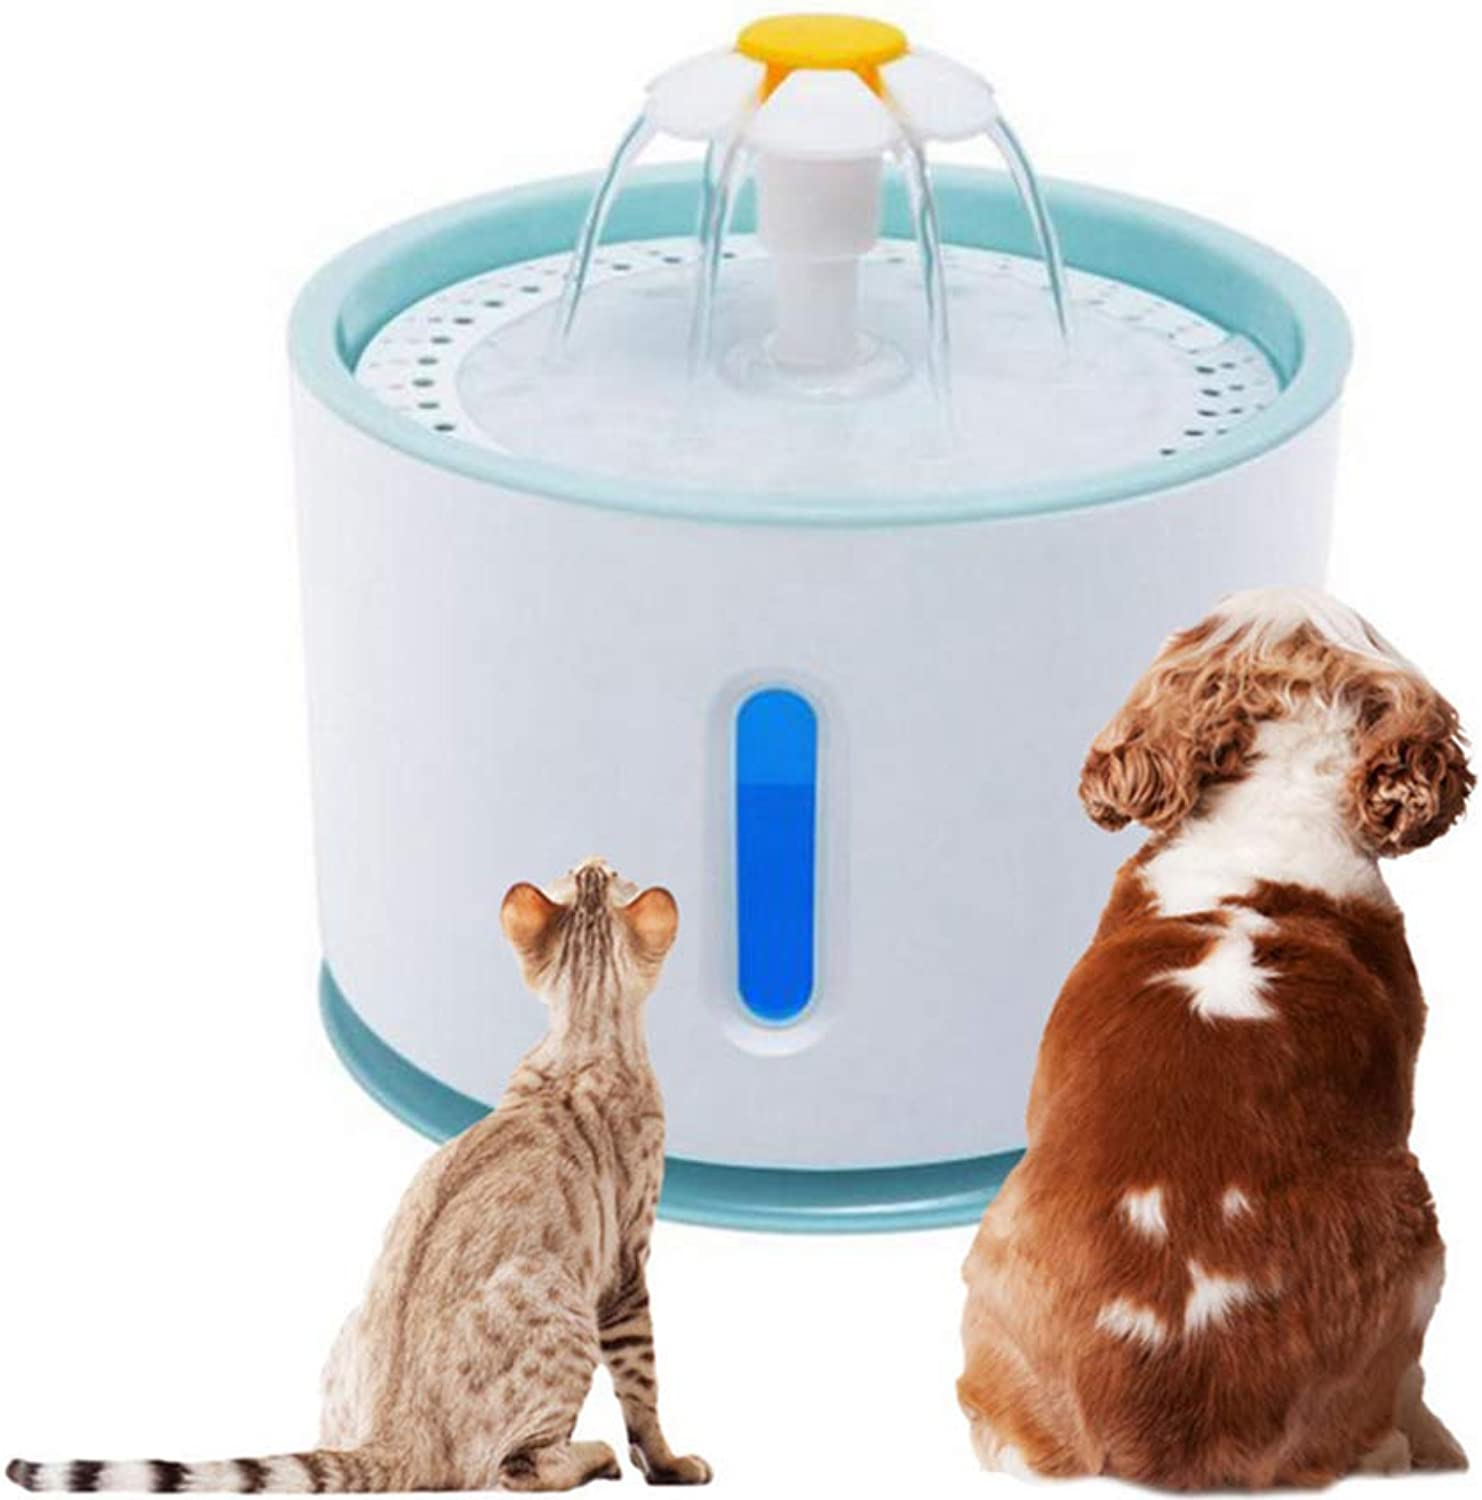 Pet Fountain, Ultra Silent Healthy and Hygienic Cat Waterfall Flower Style Fountain  2.4L Cat Fountain LED  3 Modes Drinking Fountain,B